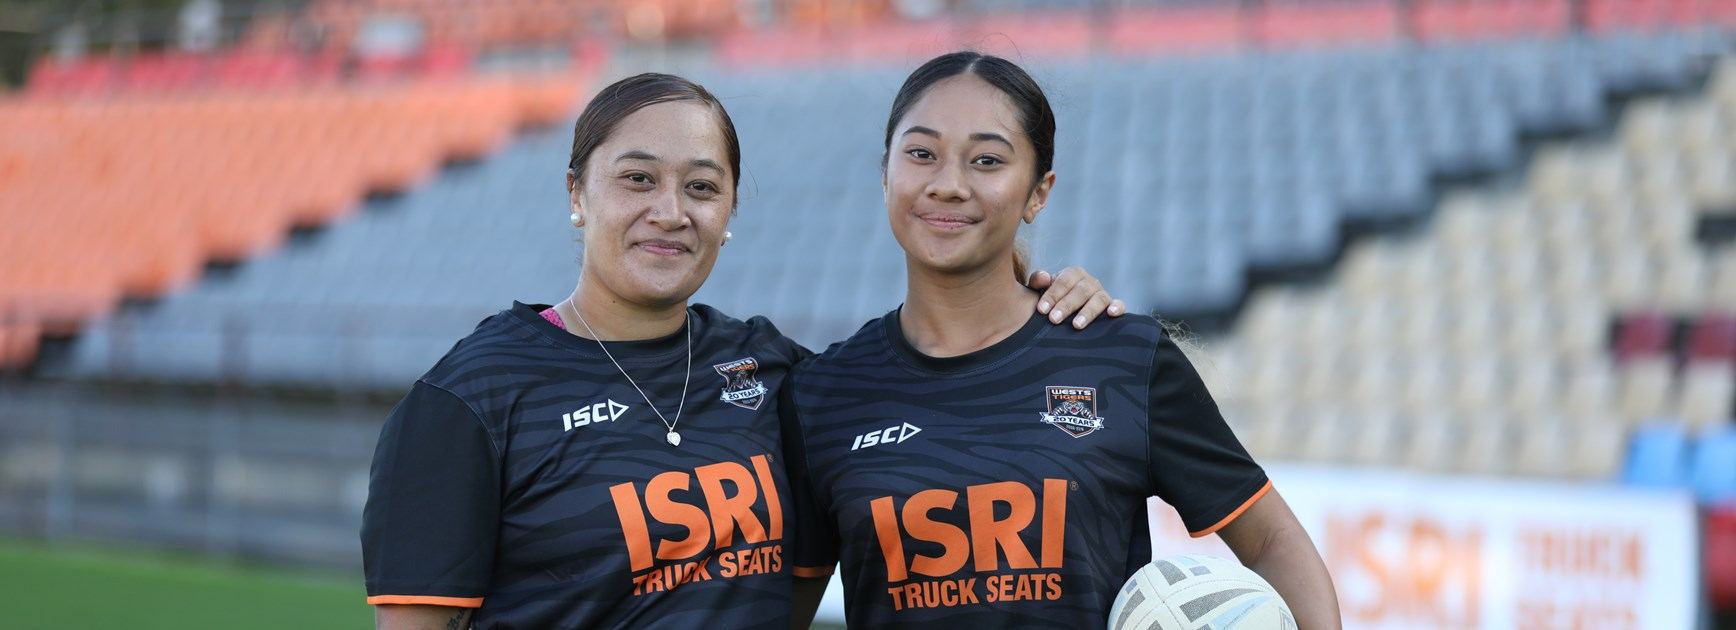 The mother-daughter duo breaking new ground at Wests Tigers